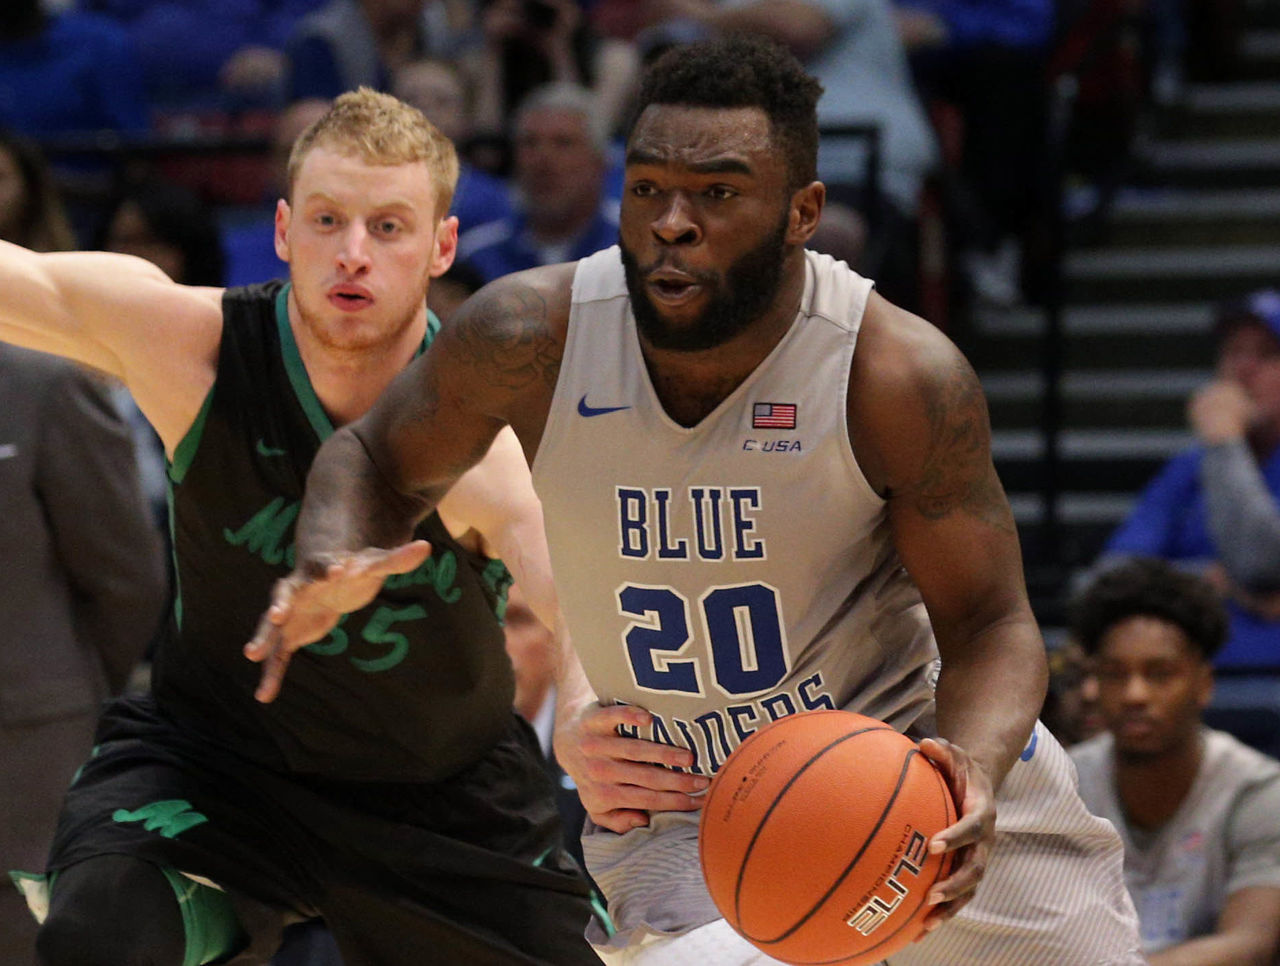 Cropped 2017 03 12t042503z 1254649812 nocid rtrmadp 3 ncaa basketball conference usa tournament marshall vs middle tennessee state